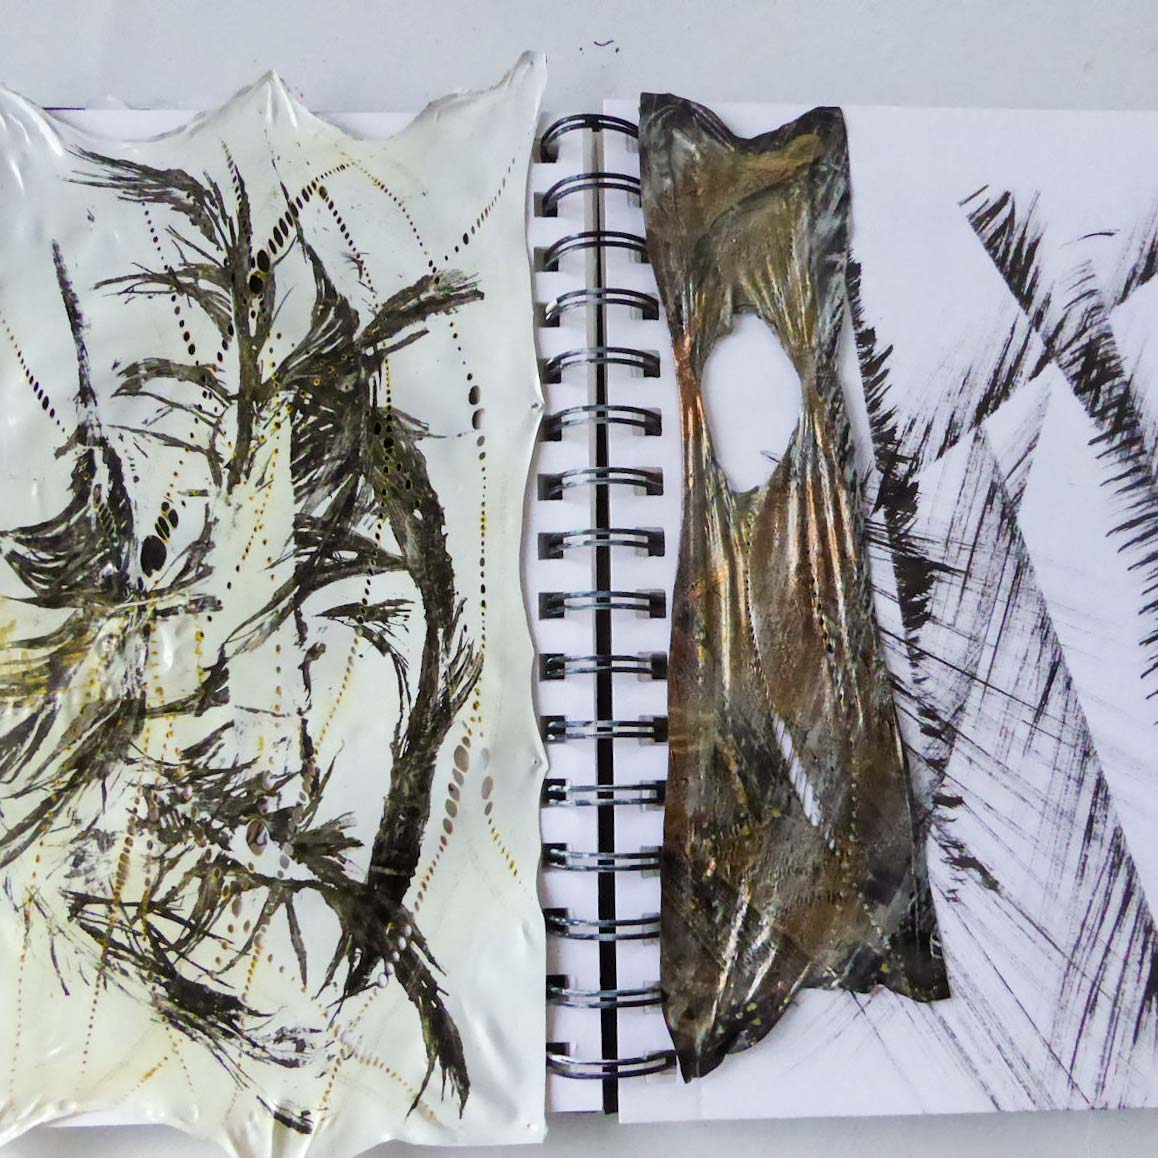 Feather marks in sketchbook